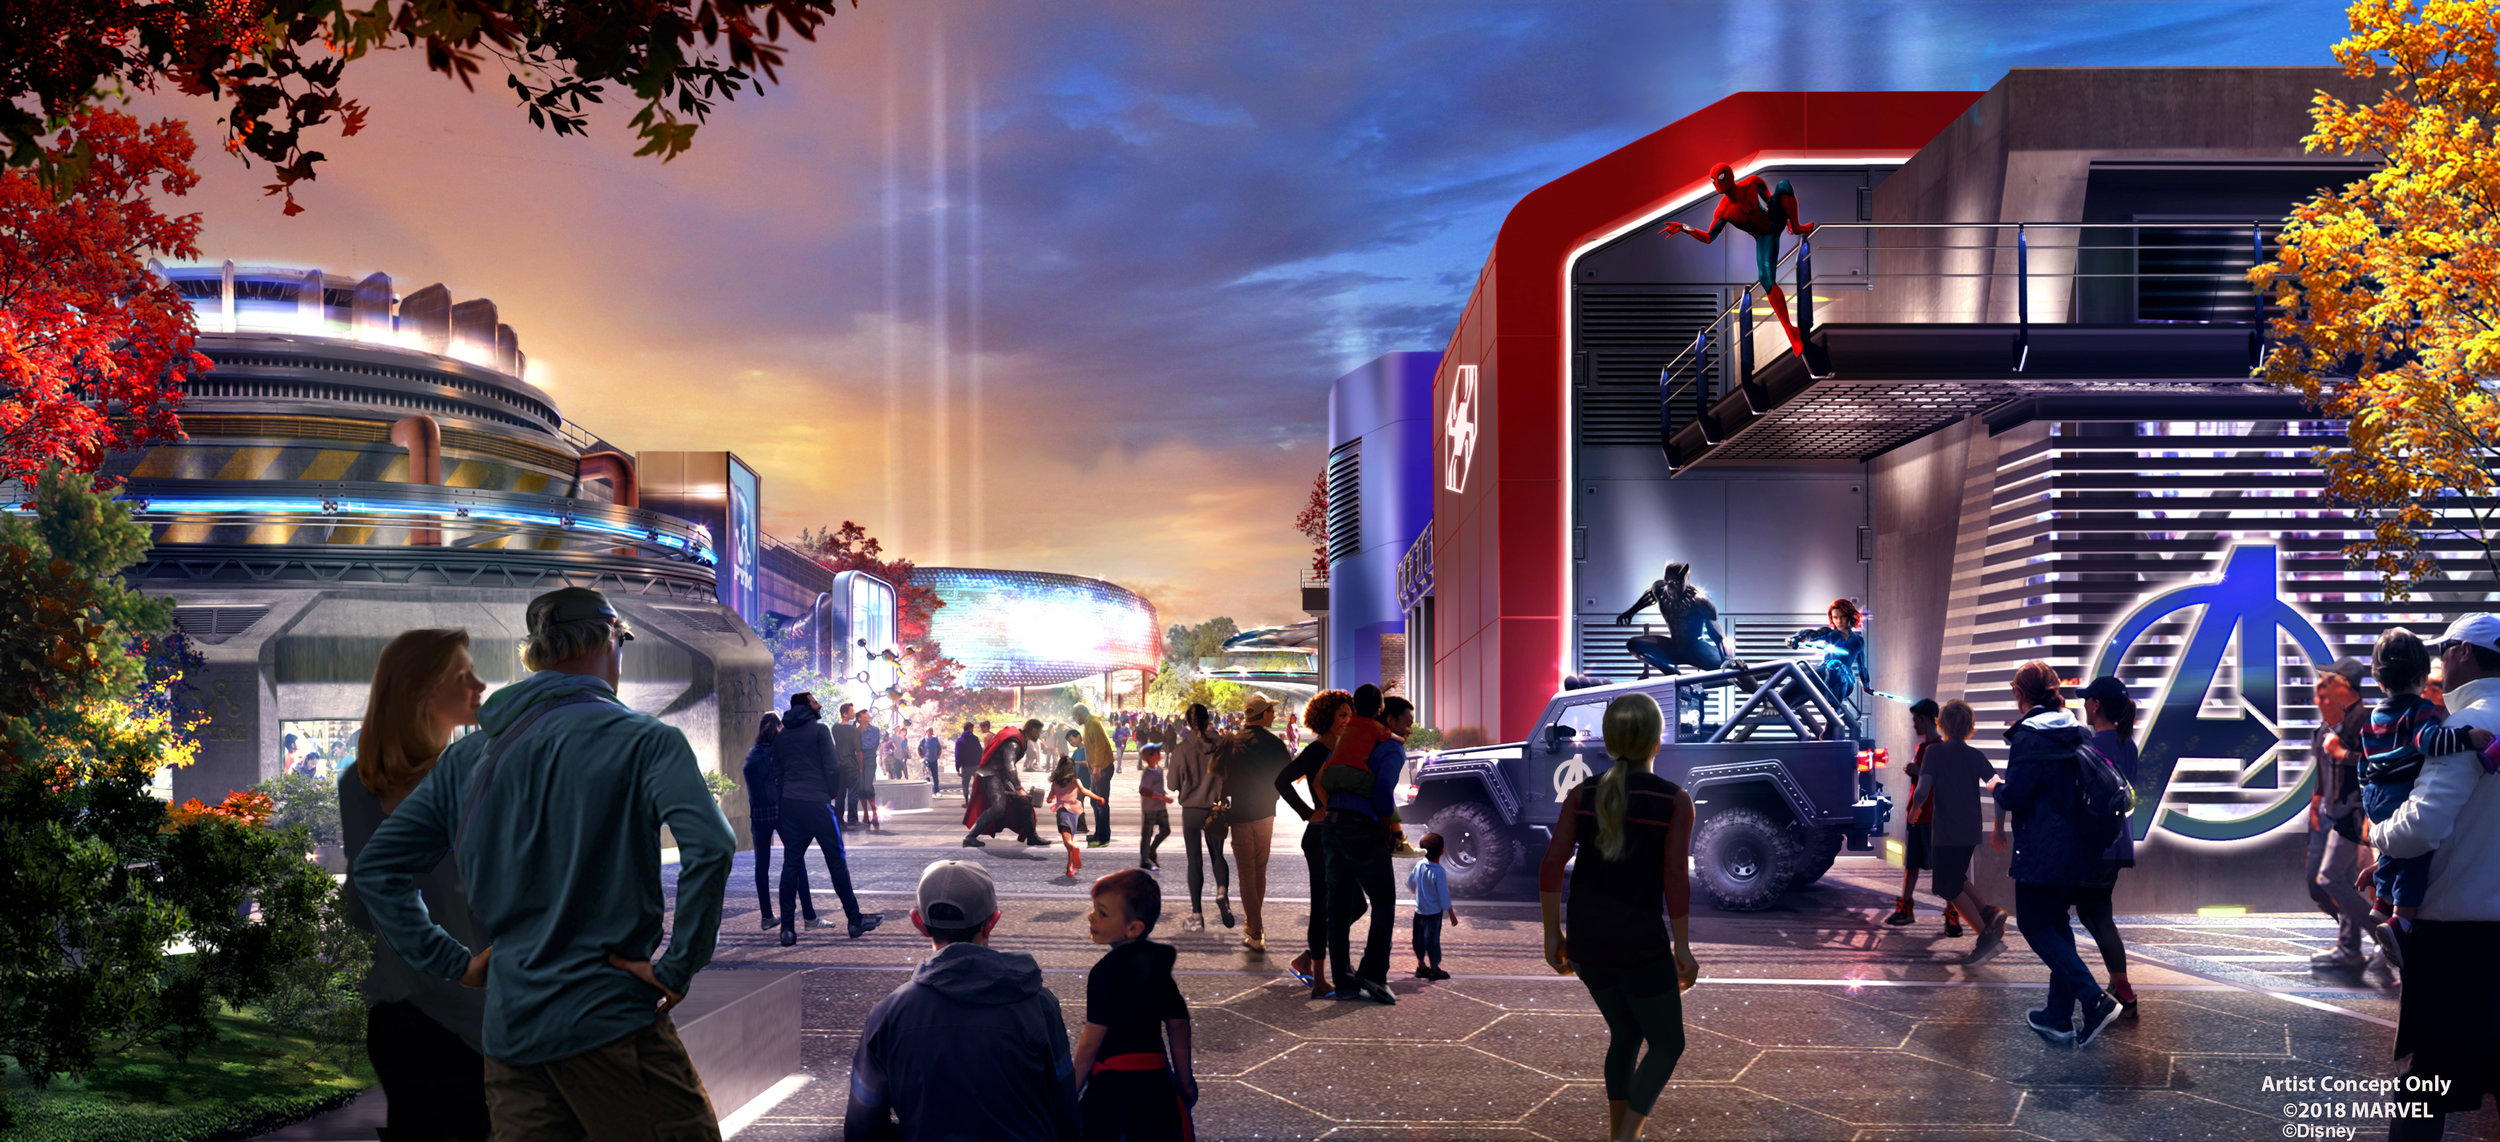 Marvel Land   This new area will allow guests to encounter the heroes in new and exciting ways, from the mystic arts of Doctor Strange to the gravity defying feats of Spider-Man. Guests will also experience the latest in Pym Technology with Ant-Man and Wasp and be wowed as Iron Man, Captain Marvel, Black Panther, Captain America and more leap into action on a moment's notice.  In addition to unforgettable heroic encounters, incredible new attractions, thrilling entertainment offerings and dining options, guests will experience a completely reimagined  Rock'n' Roller Coaster , which will become a high-speed, hyper-kinetic adventure.  As part of a €2 Billion, multi-year expansion plan, this immersive area marks a first step in the transformation of Walt Disney Studios Park. One of the park's areas will be completely transformed, giving the Marvel Super Heroes a permanent presence at Disneyland Paris. With legendary storytelling, even more action and adventure using innovative technology, and both indoor and outdoor shows and entertainment, this authentic experience will cement Walt Disney Studios Park as a must-do for all guests.  With three new areas based on Marvel, Frozen and  Star Wars , along with multiple new attractions and live entertainment experiences, this ambitious development will bring to life some of the world-renowned stories and iconic characters of these popular franchises.